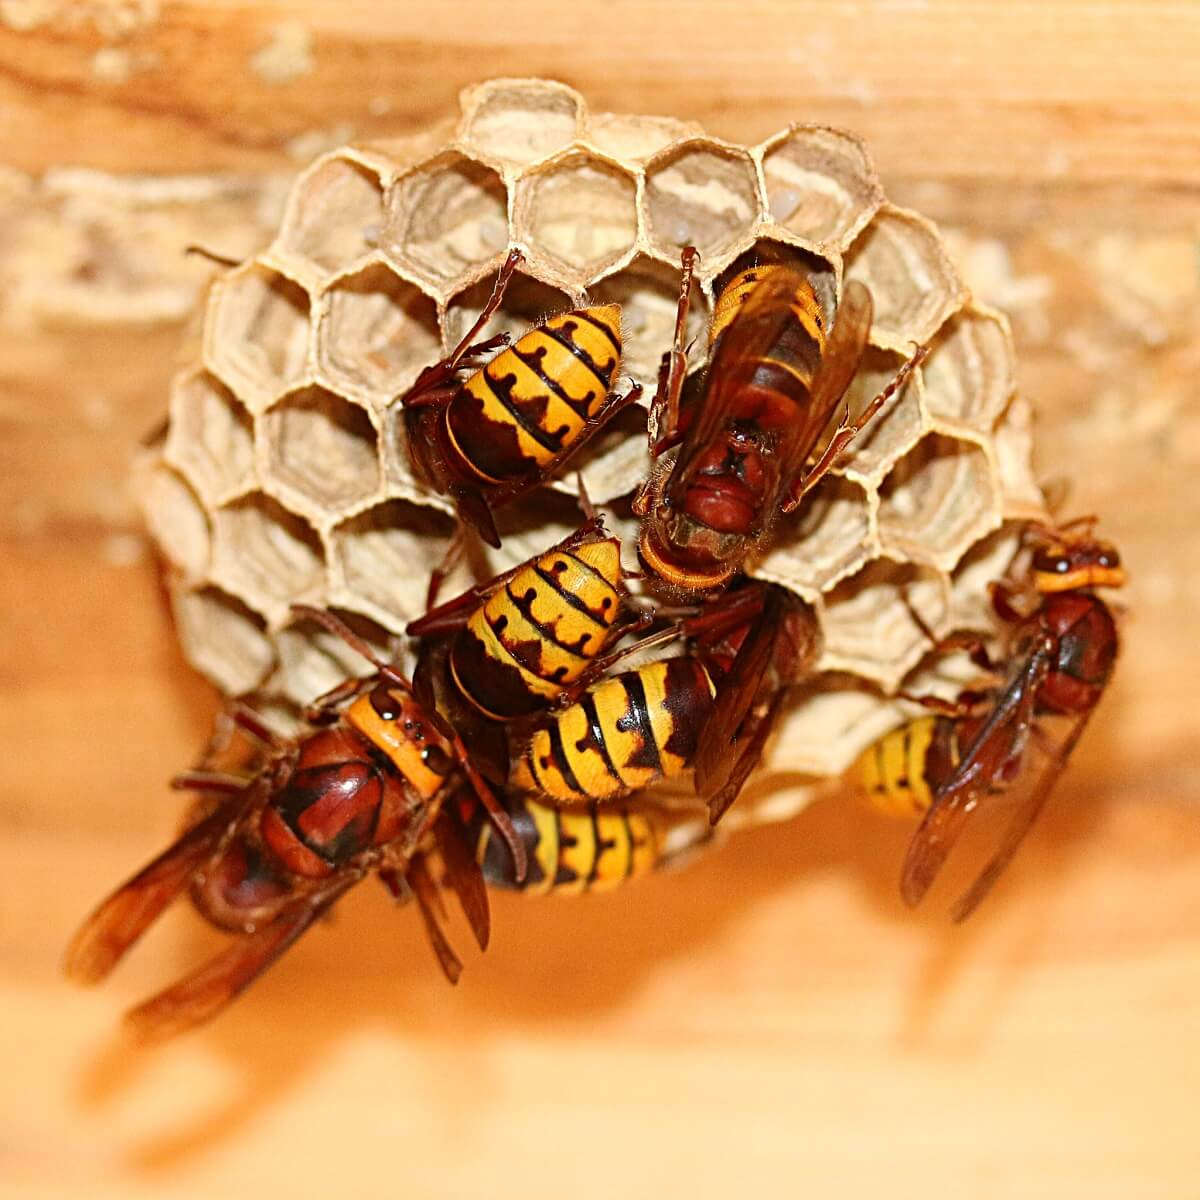 early stages of hornets nest